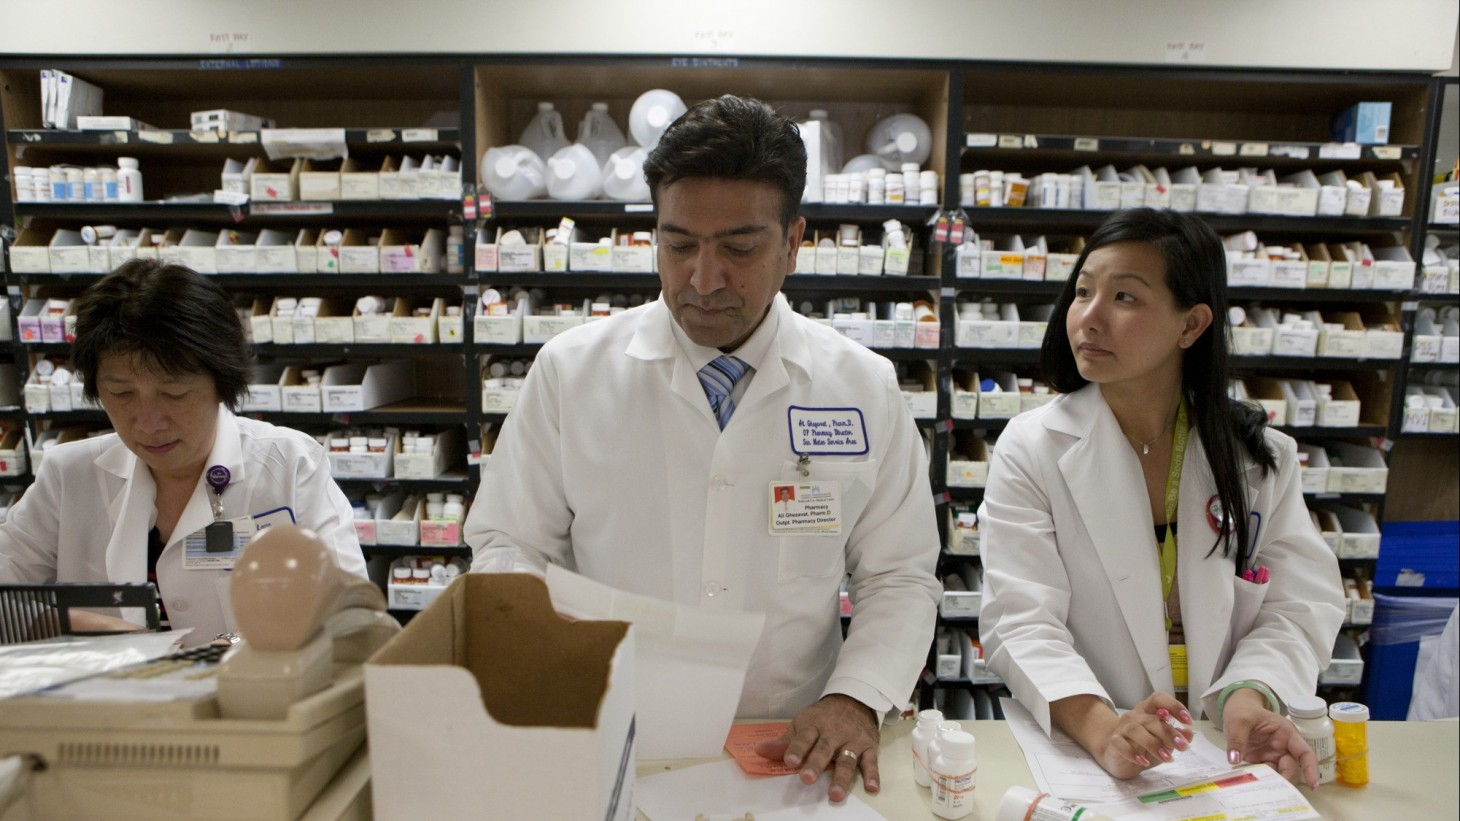 Three pharmacy workers working in front of a wall of medications